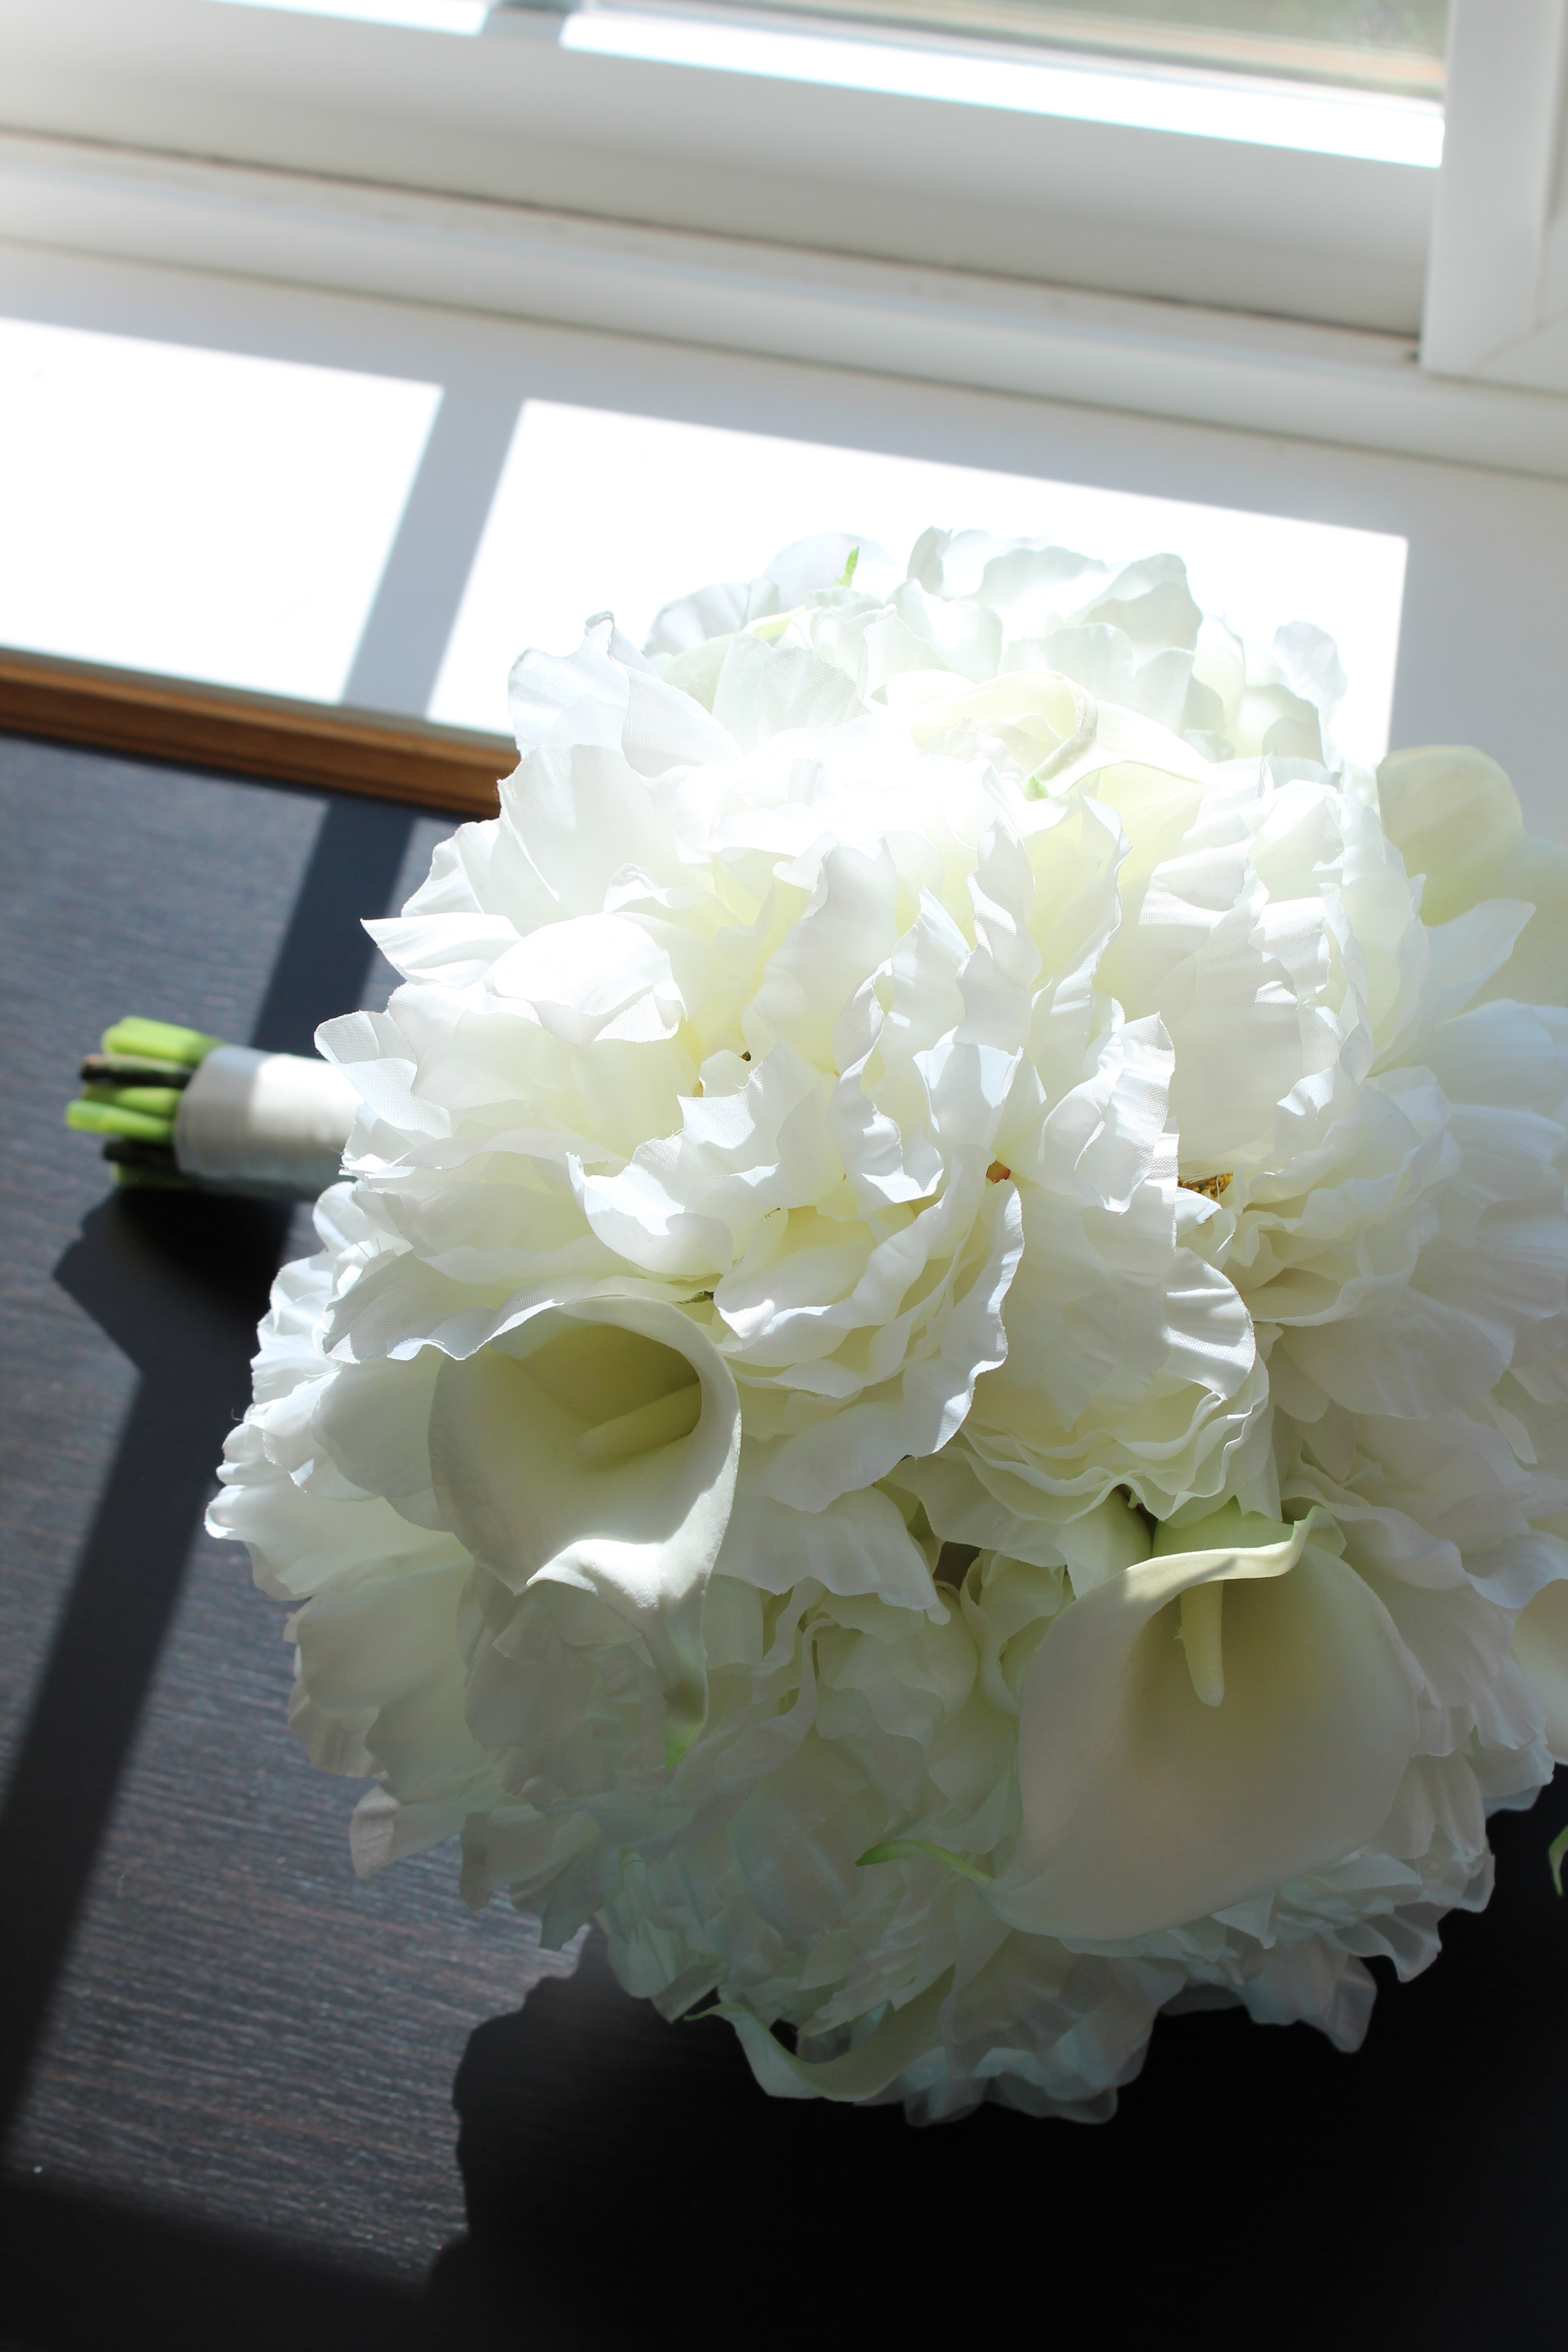 minneapolissilk-wedding-flowers-bridal-bouquet.jpg